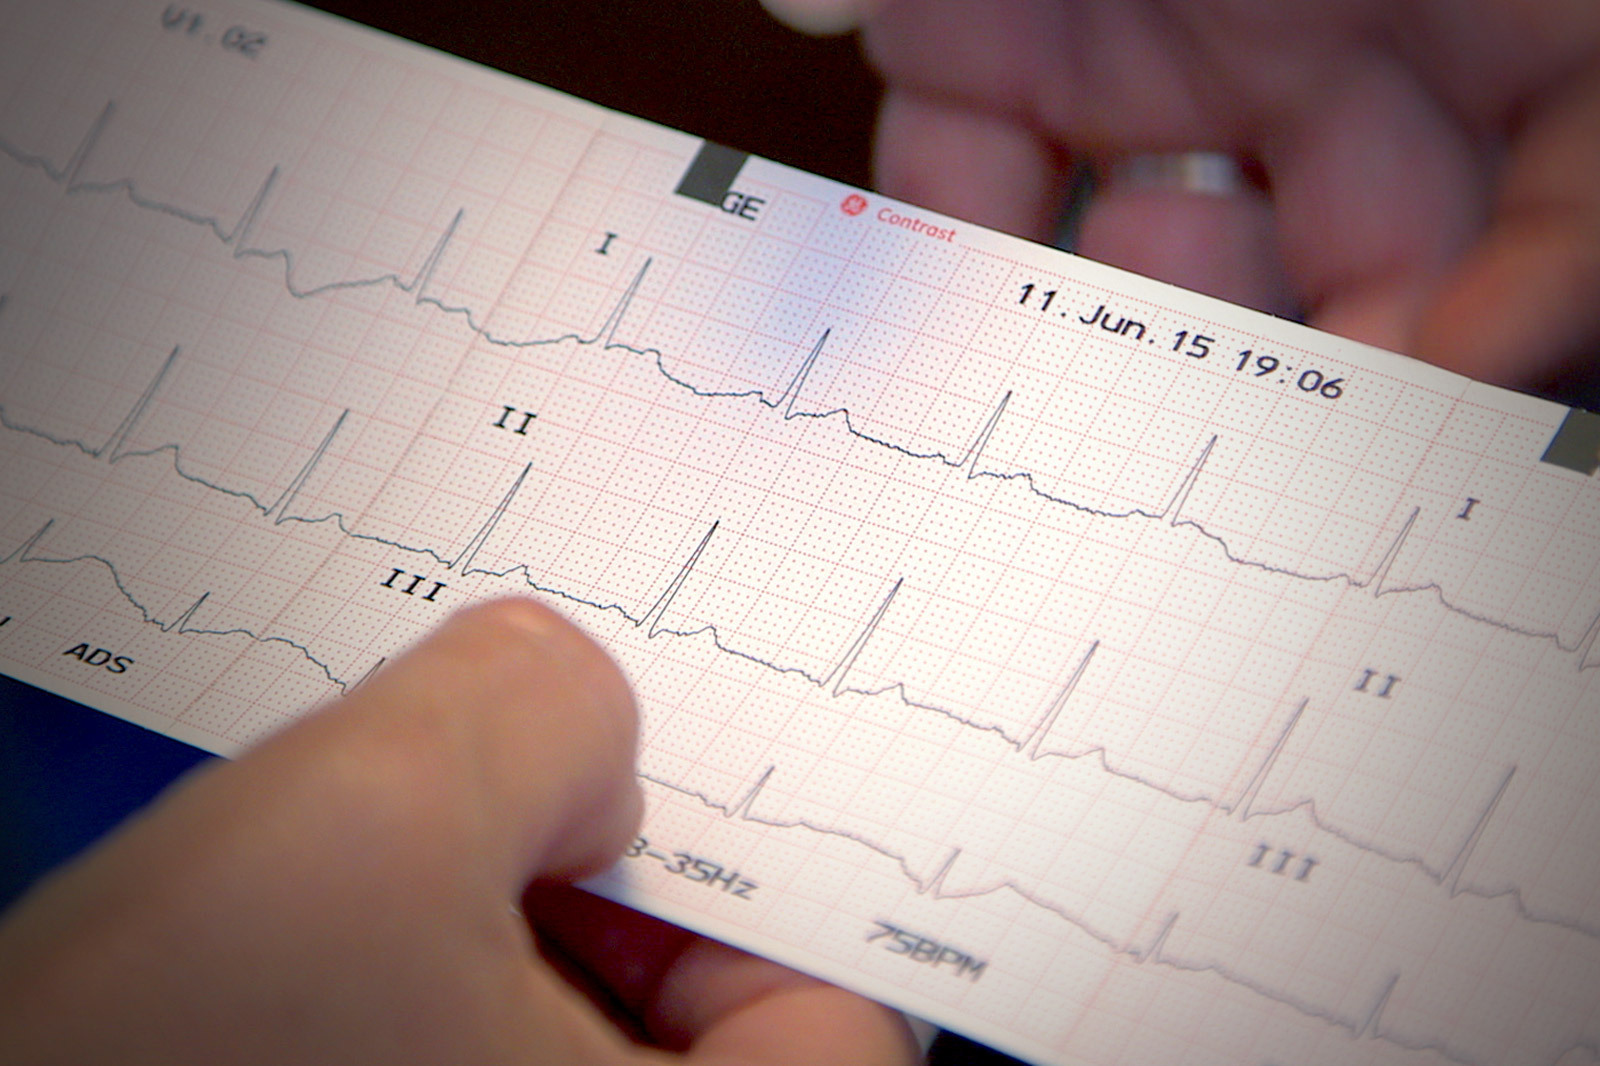 Ecg Assessment Online Course